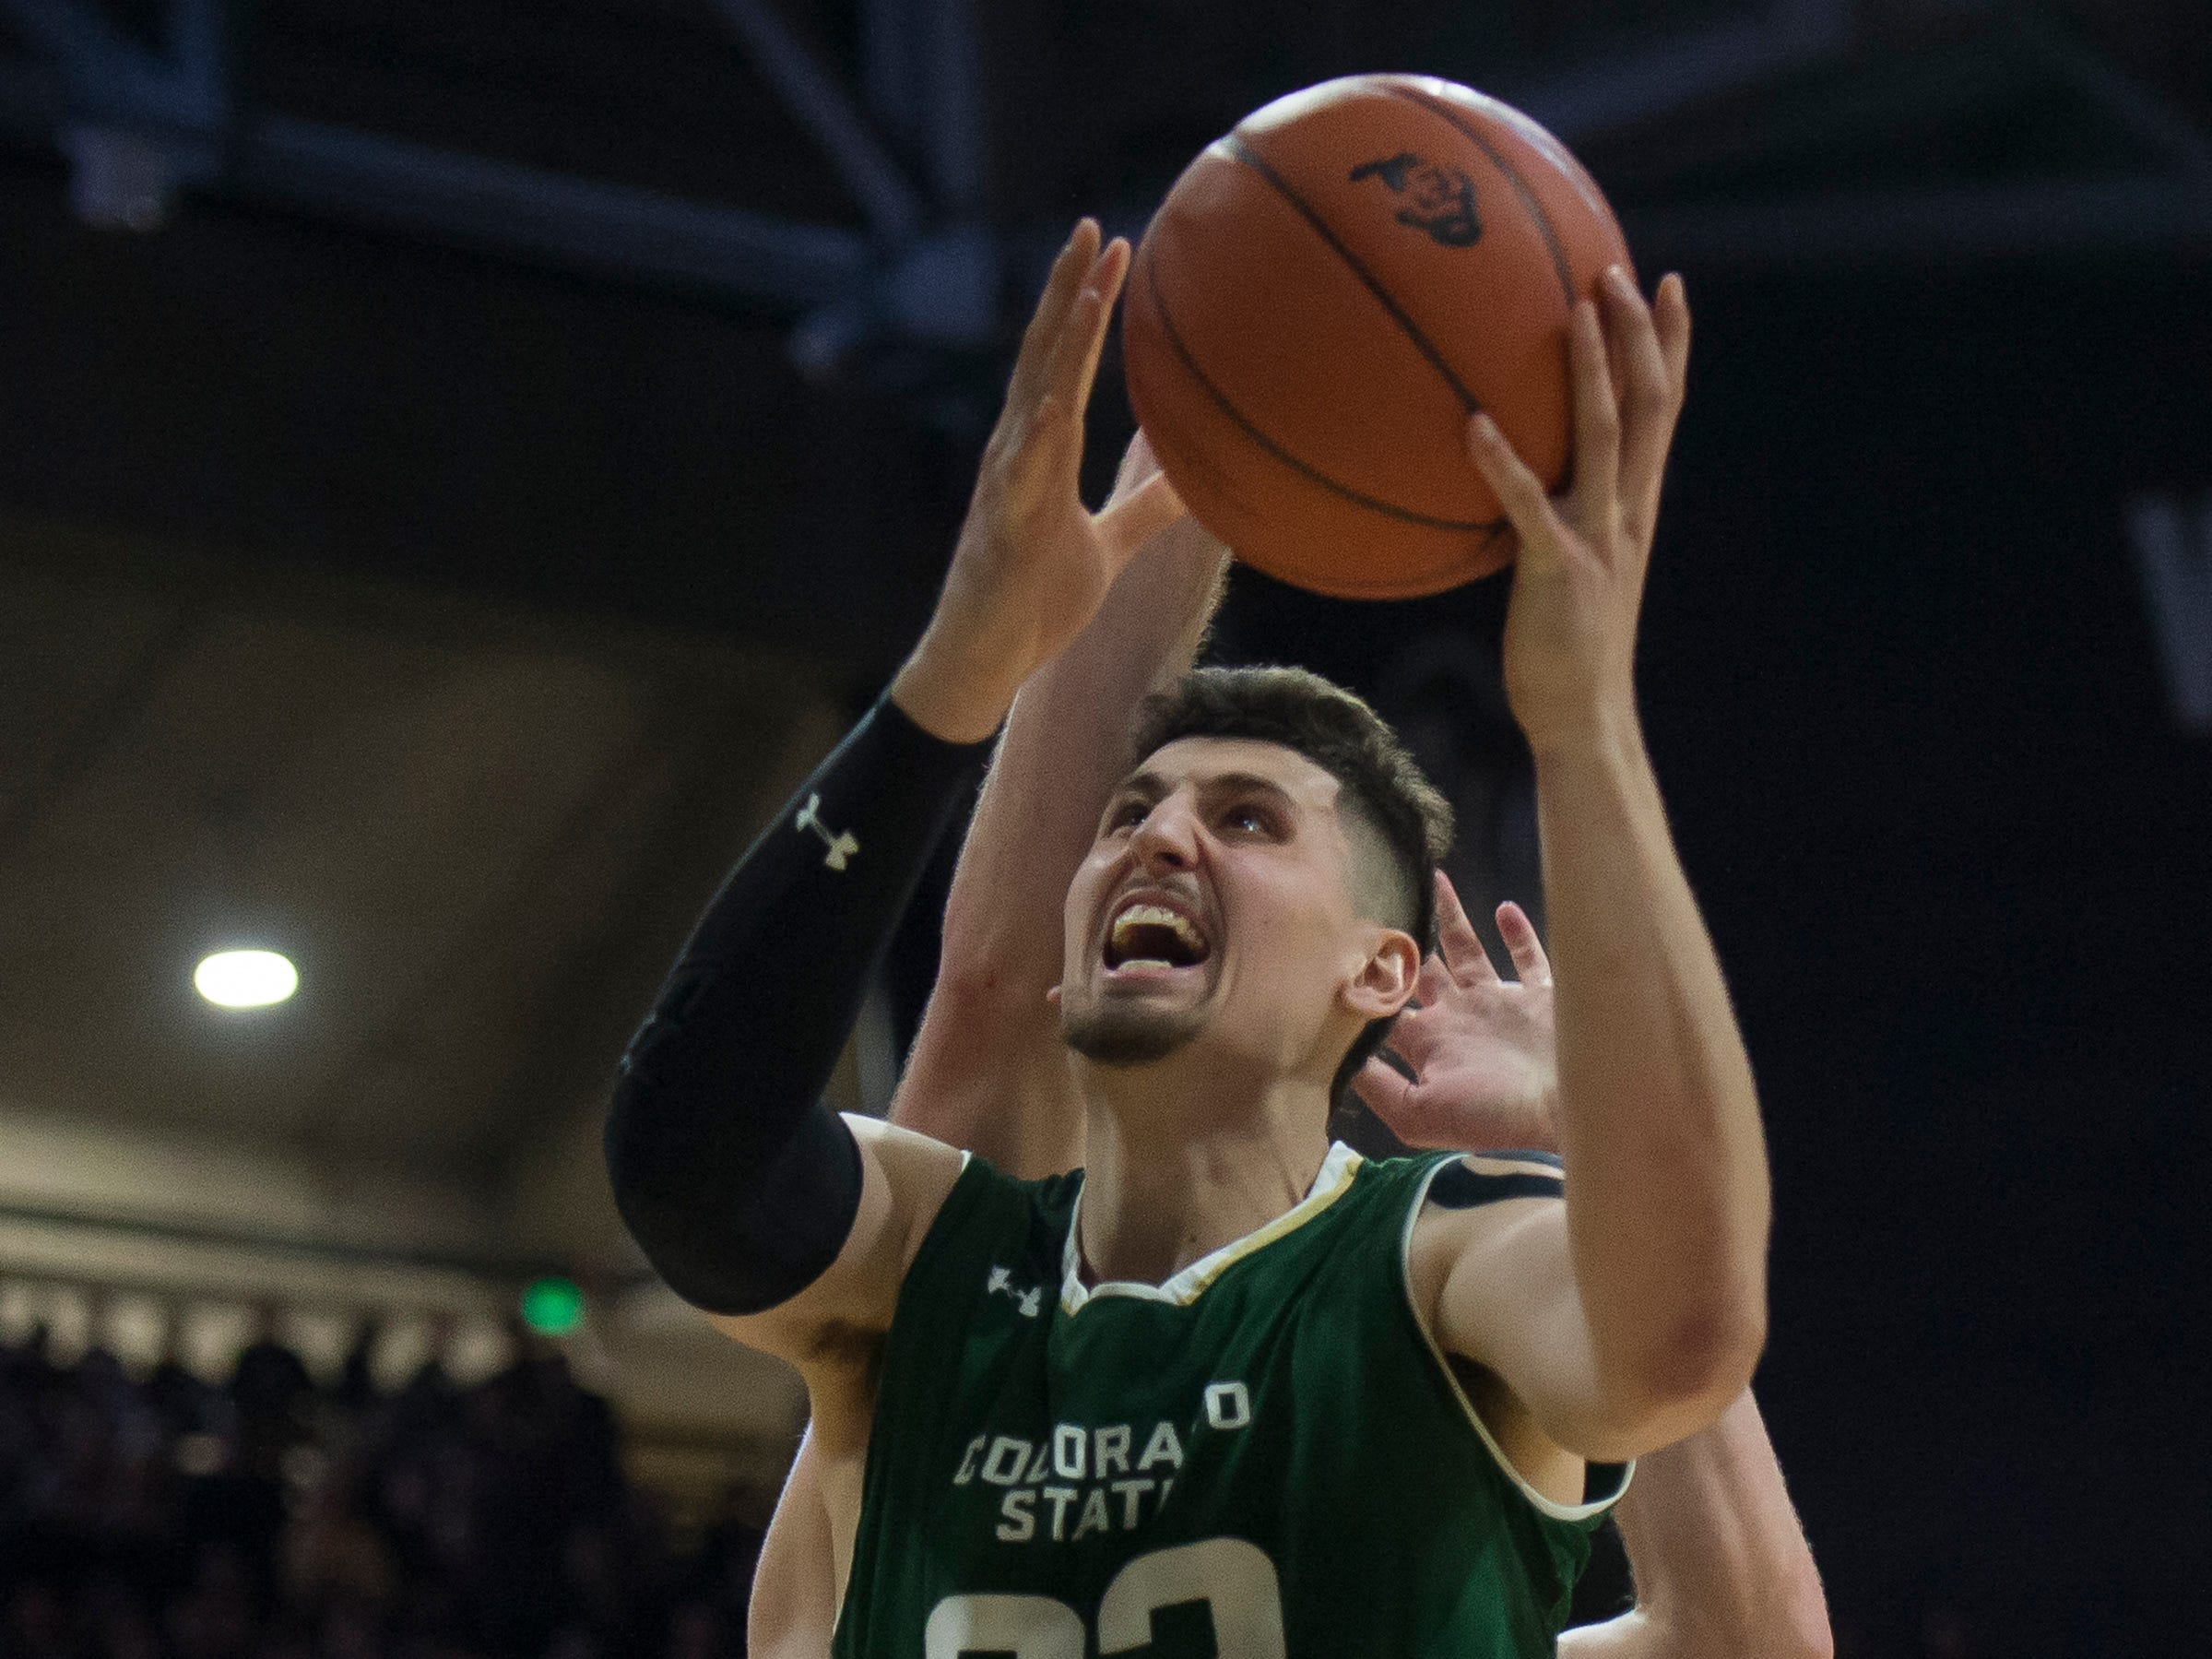 Colorado State University junior center Nico Carvacho (32) puts a shot up during a game against the University of Colorado on Saturday, Dec. 1, 2018, at the CU Event Center in Boulder, Colo.